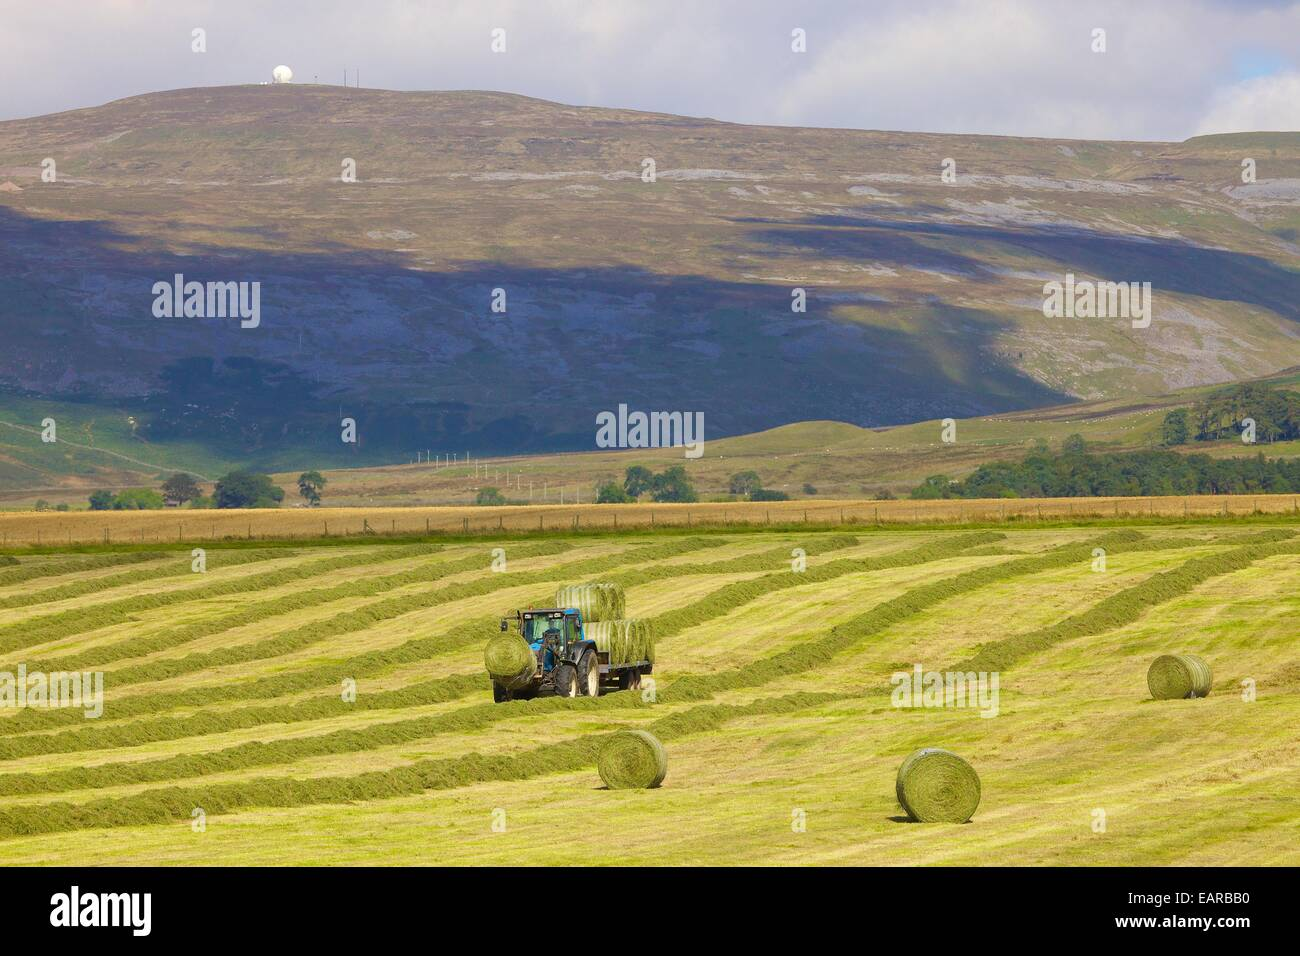 Tractor and trailer transporting hay bails below radar station. Great Dun Fell, Eden Valley, Cumbria, England, UK. - Stock Image